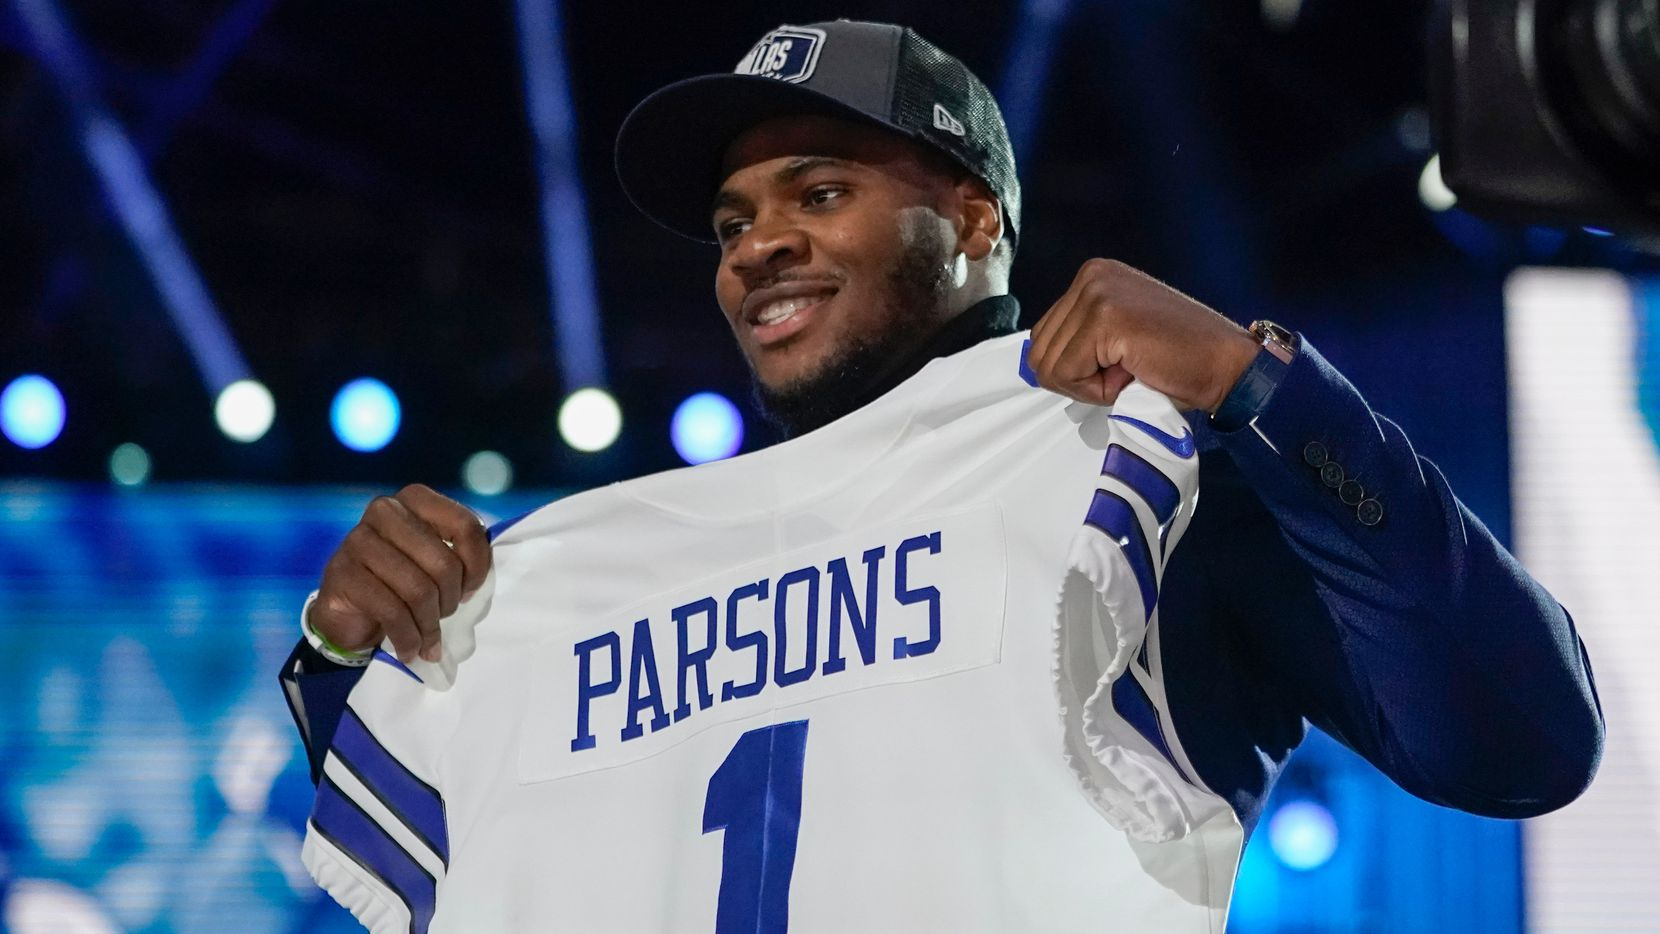 Penn State linebacker Micah Parsons holds a team jersey after the was chosen by the Dallas Cowboys with the 12th pick in the NFL football draft Thursday, April 29, 2021, in Cleveland.